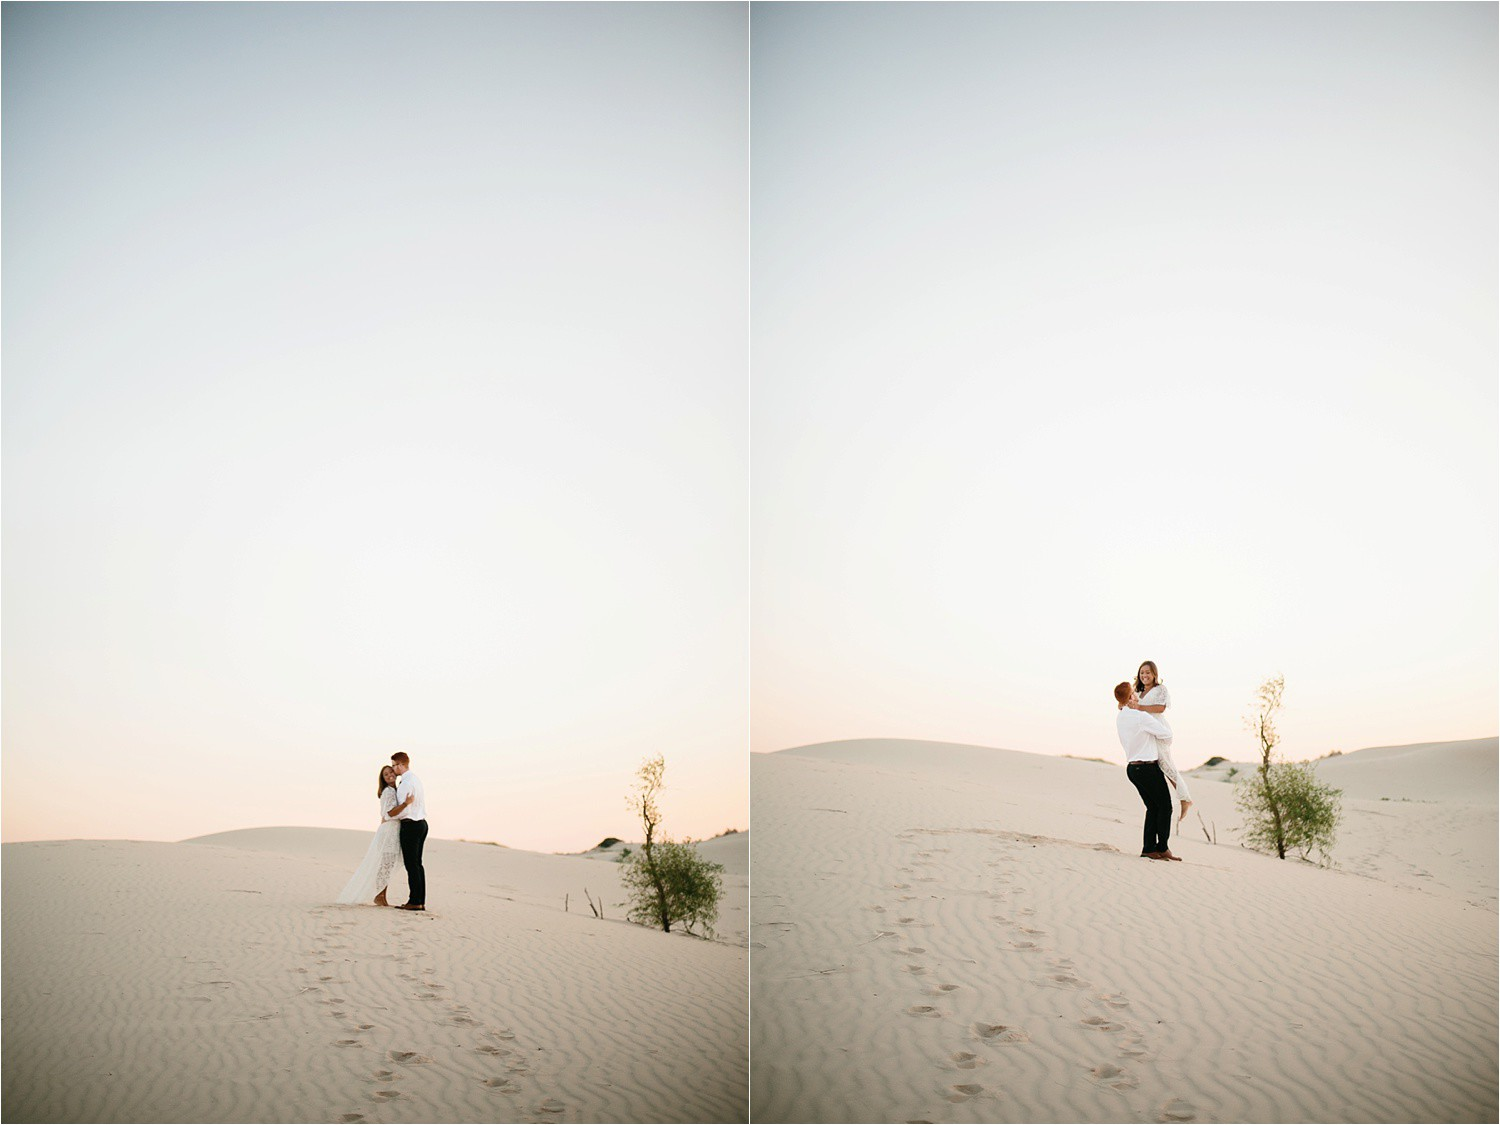 Lauren + Jacob __ a monahans sand dunes engagement session at sunrise by North Texas Wedding Photographer, Rachel Meagan Photography __ 08